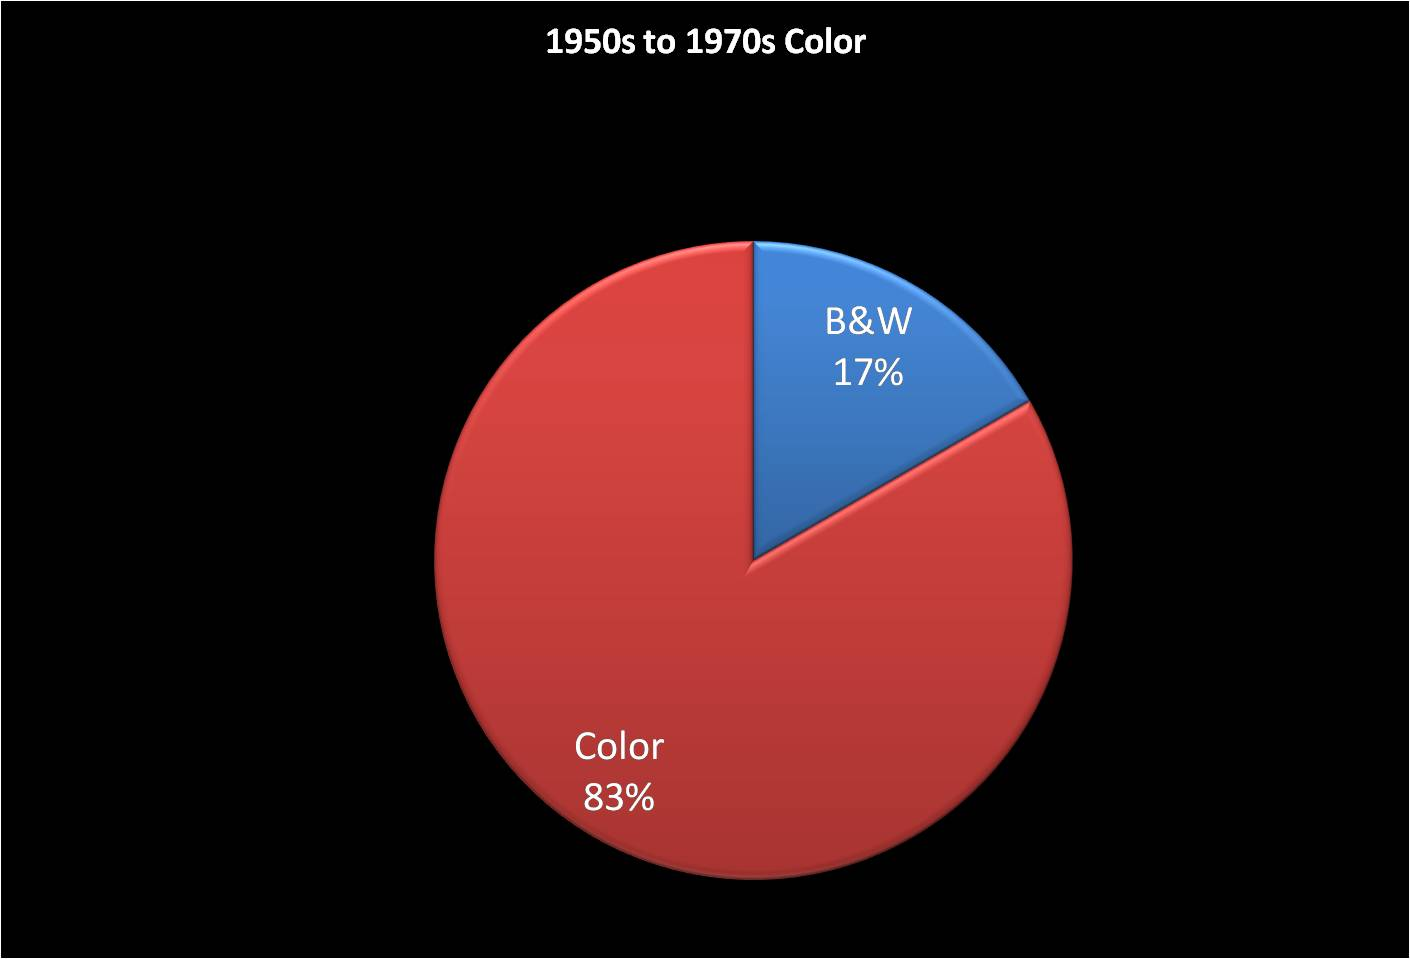 Color - The 50s through 70s